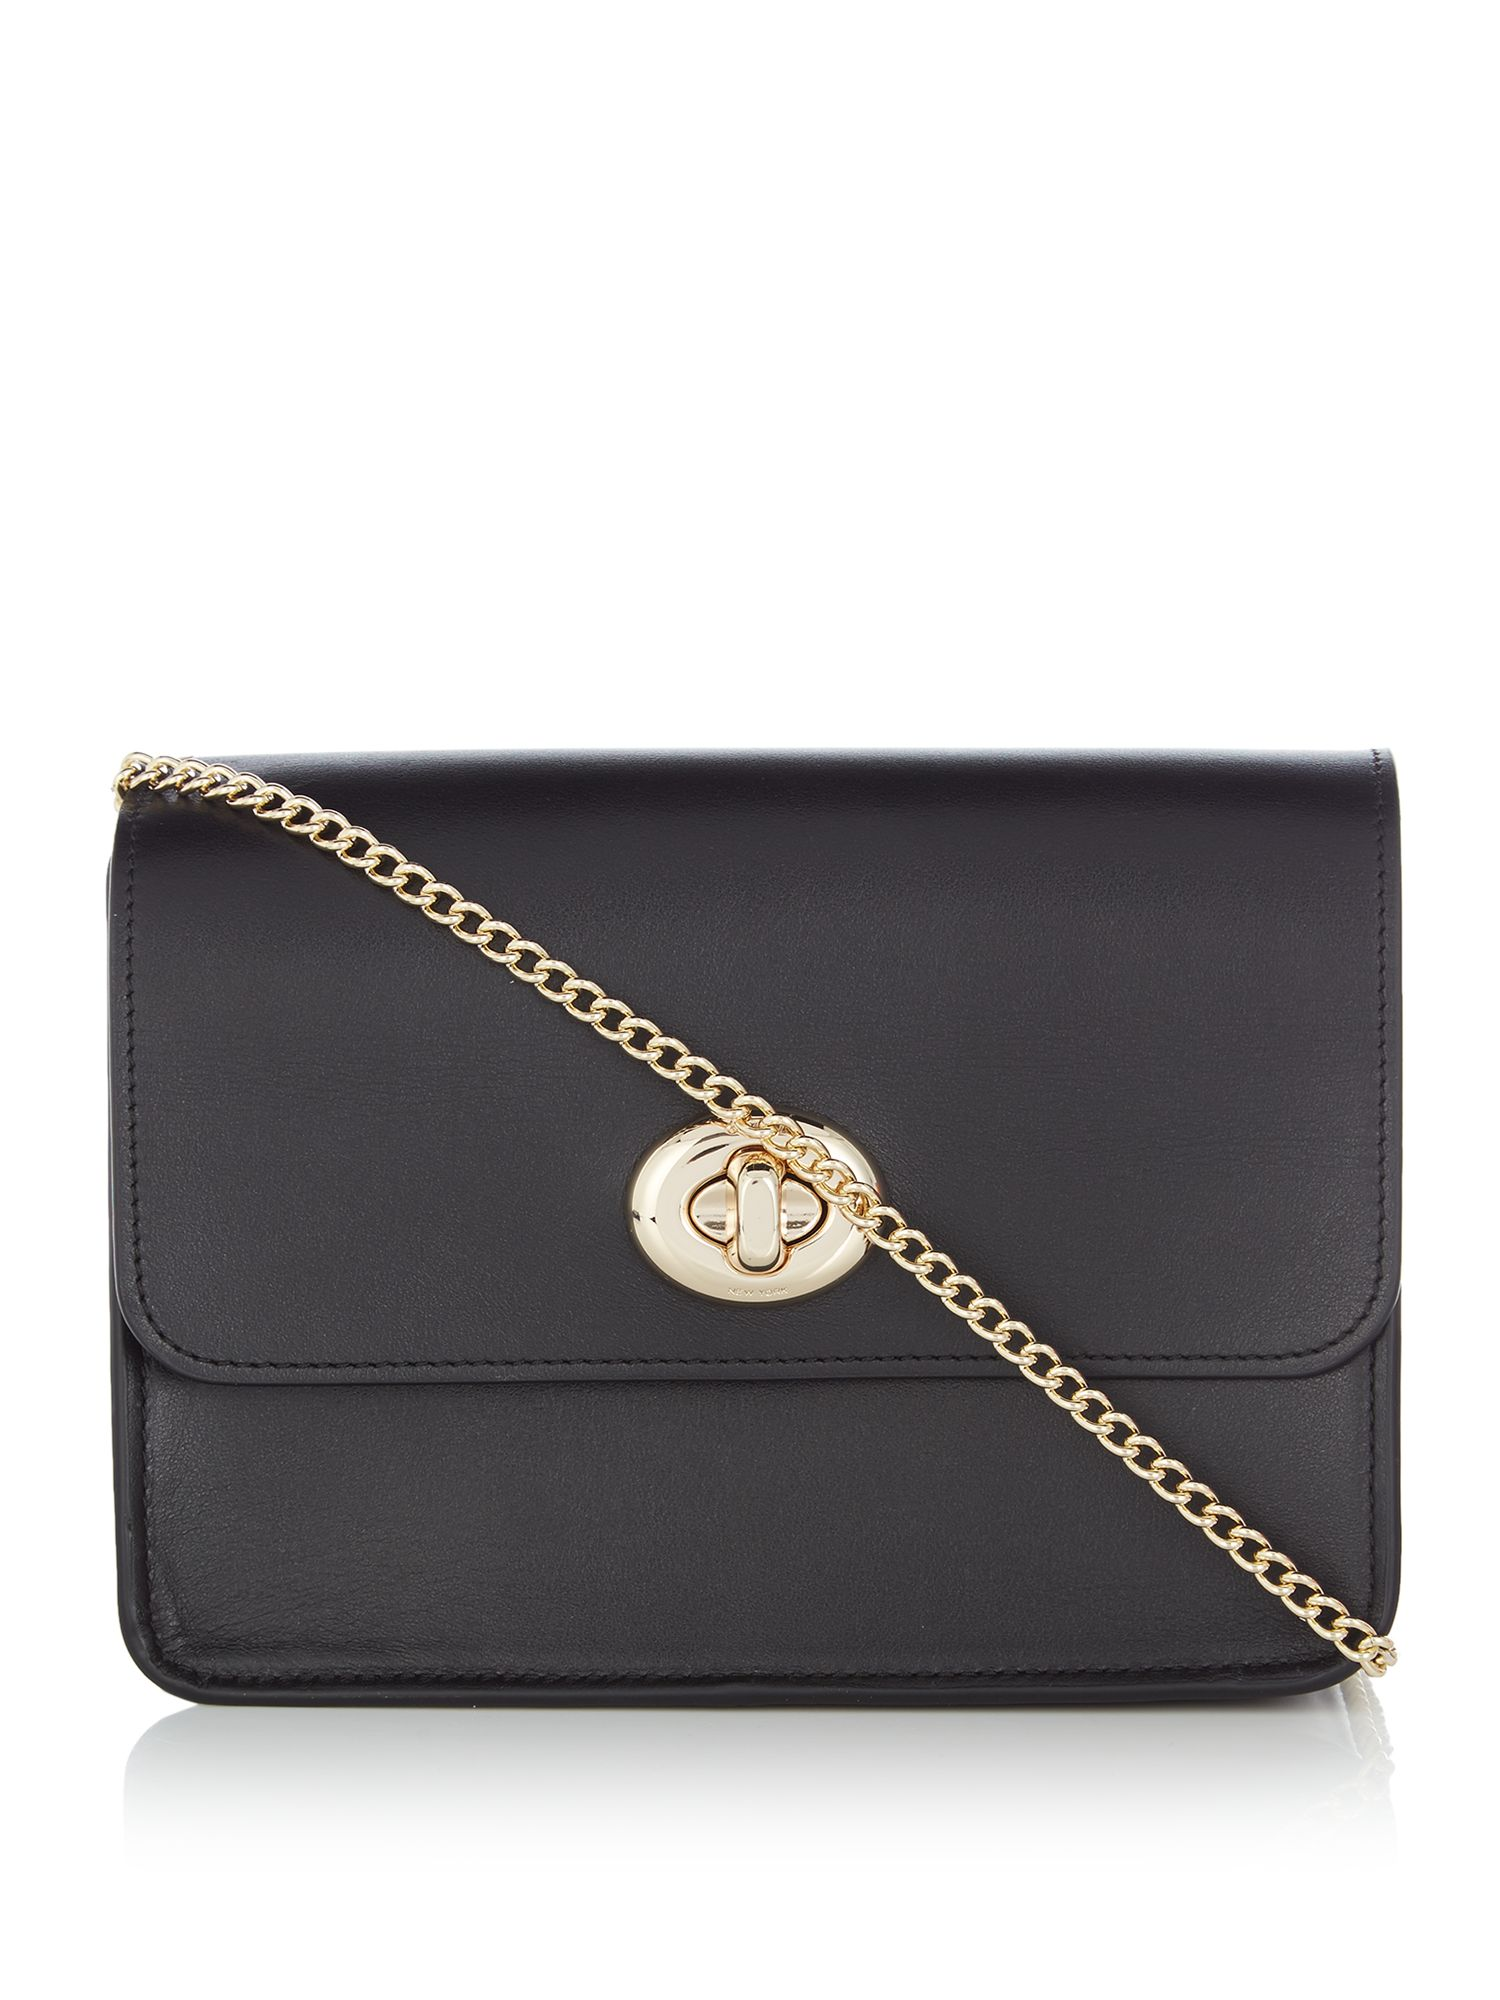 Coach Bowery crossbody bag, Black